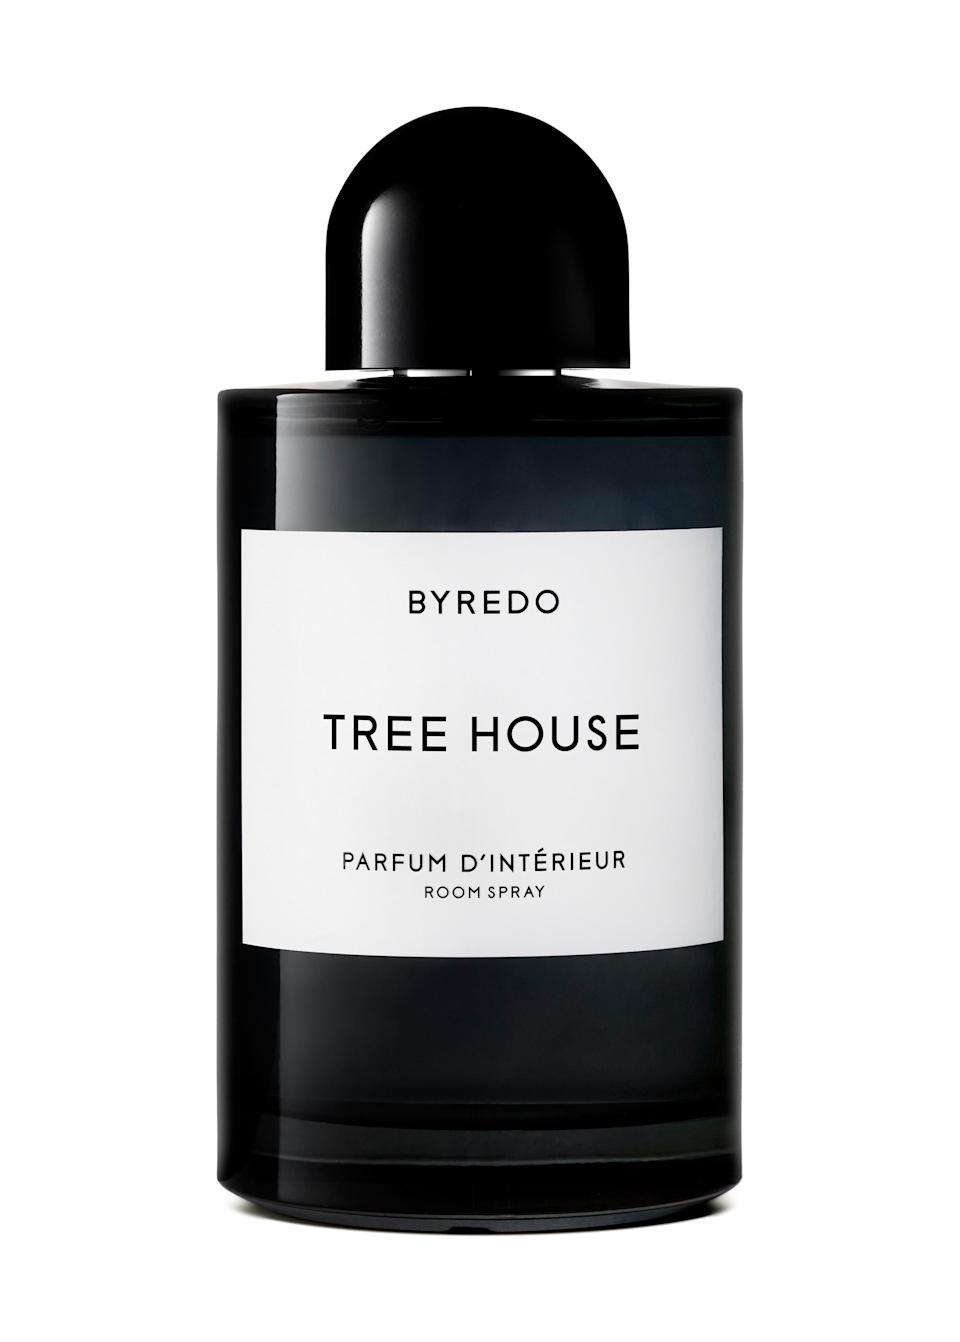 """Byredo's extremely photogenic home fragrances look as great as they smell, and can double as <a href=""""https://www.glamour.com/gallery/best-housewarming-gifts?mbid=synd_yahoo_rss"""" rel=""""nofollow noopener"""" target=""""_blank"""" data-ylk=""""slk:a housewarming gift"""" class=""""link rapid-noclick-resp"""">a housewarming gift</a> for your sister who just moved in (or out). $120, Nordstrom. <a href=""""https://shop.nordstrom.com/s/byredo-tree-house-room-spray/4774565?origin=coordinating-4774565-0-1-PDP_1-recbot-visually_similar_type2_no_dresses&recs_placement=PDP_1&recs_strategy=visually_similar_type2_no_dresses&recs_source=recbot&recs_page_type=product&recs_seed=4770921&color=NO%20COLOR"""" rel=""""nofollow noopener"""" target=""""_blank"""" data-ylk=""""slk:Get it now!"""" class=""""link rapid-noclick-resp"""">Get it now!</a>"""